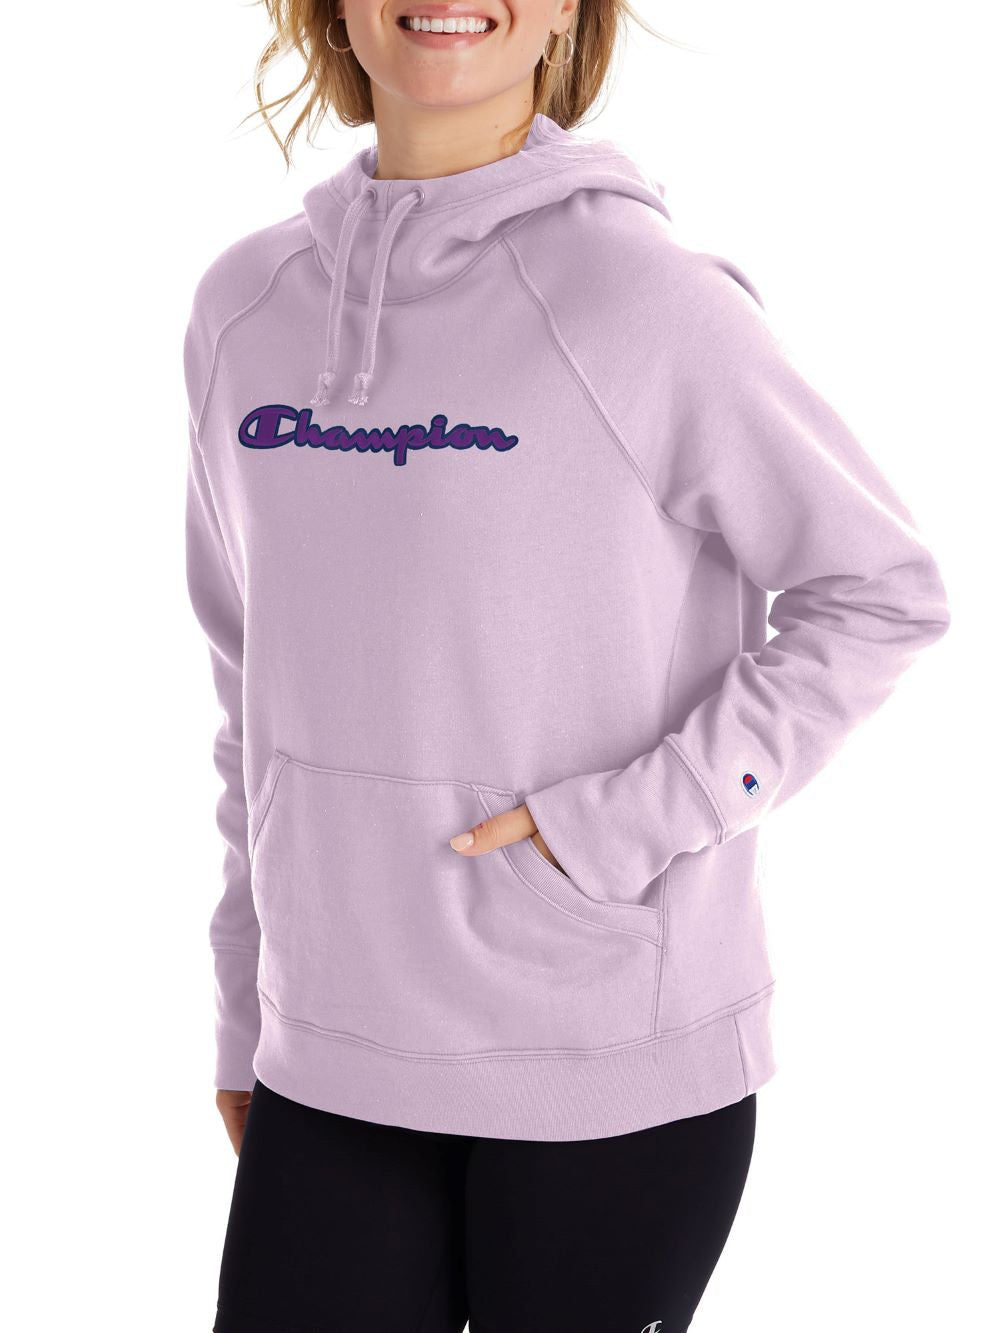 'Champion' Women's Powerblend Applique Hoodie - Water Iris